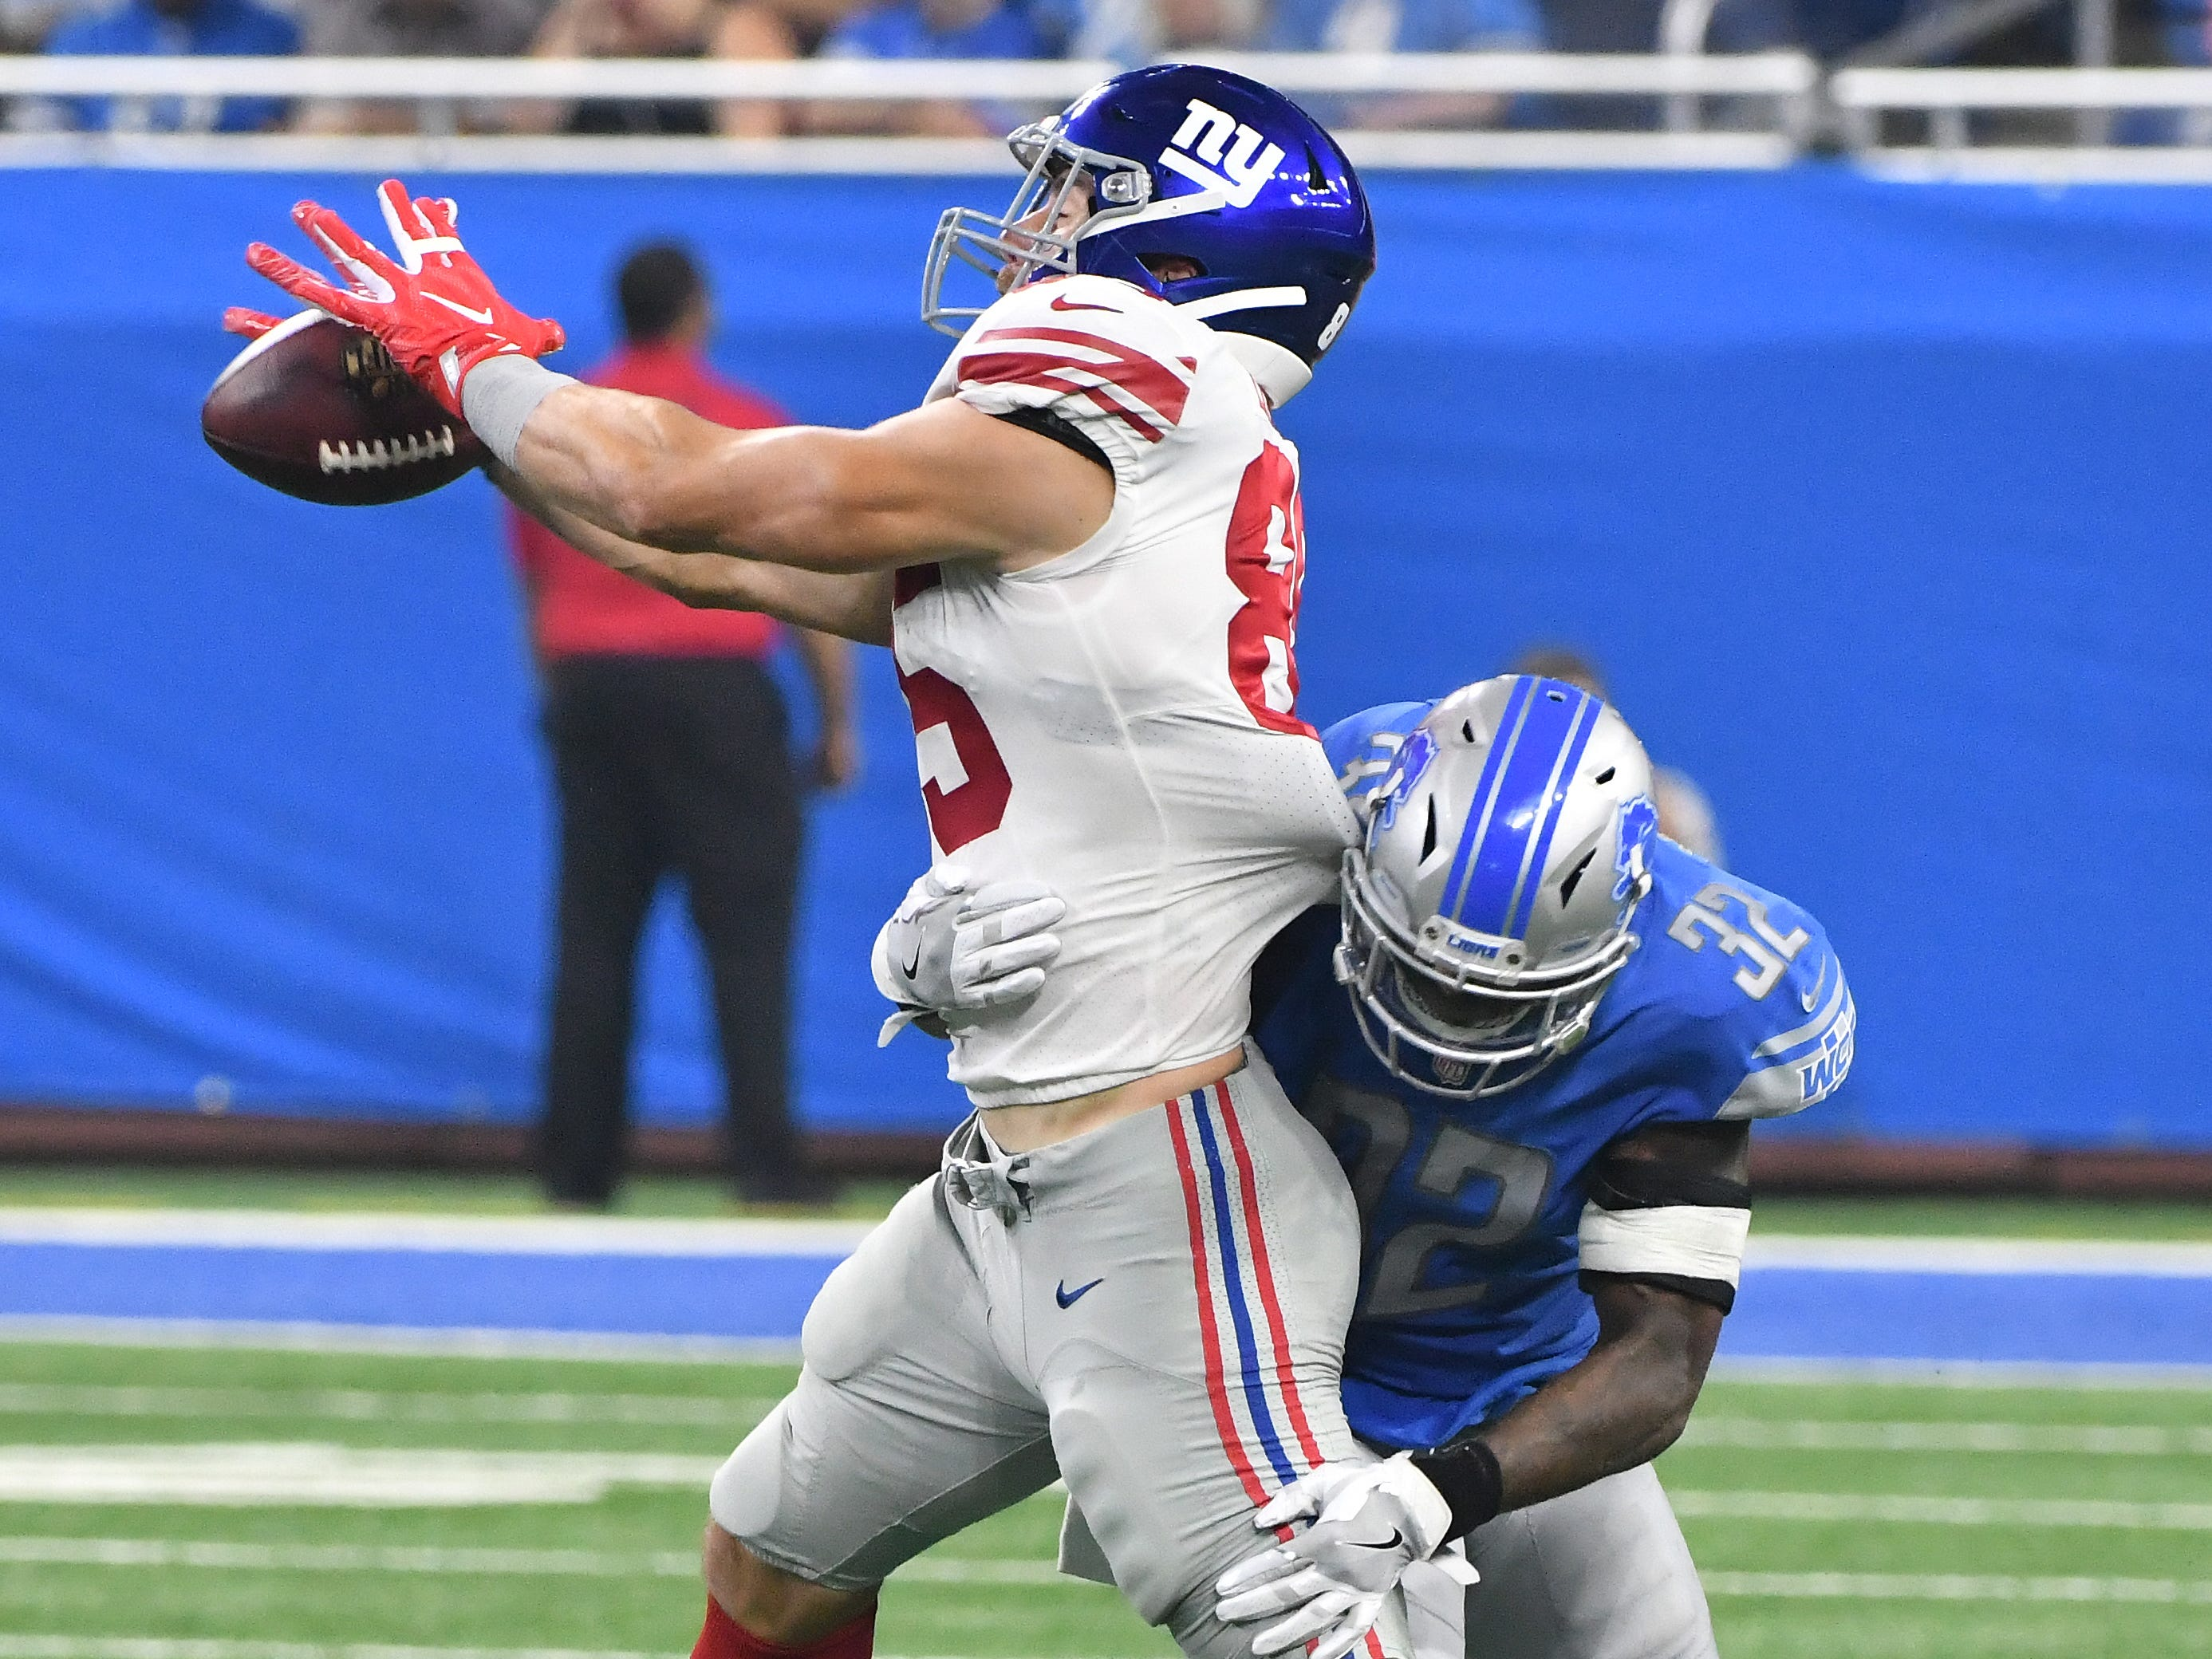 Lions' Tavon Wilson slams into Giants' Rhett Ellison forcing an incompletion in the second quarter.